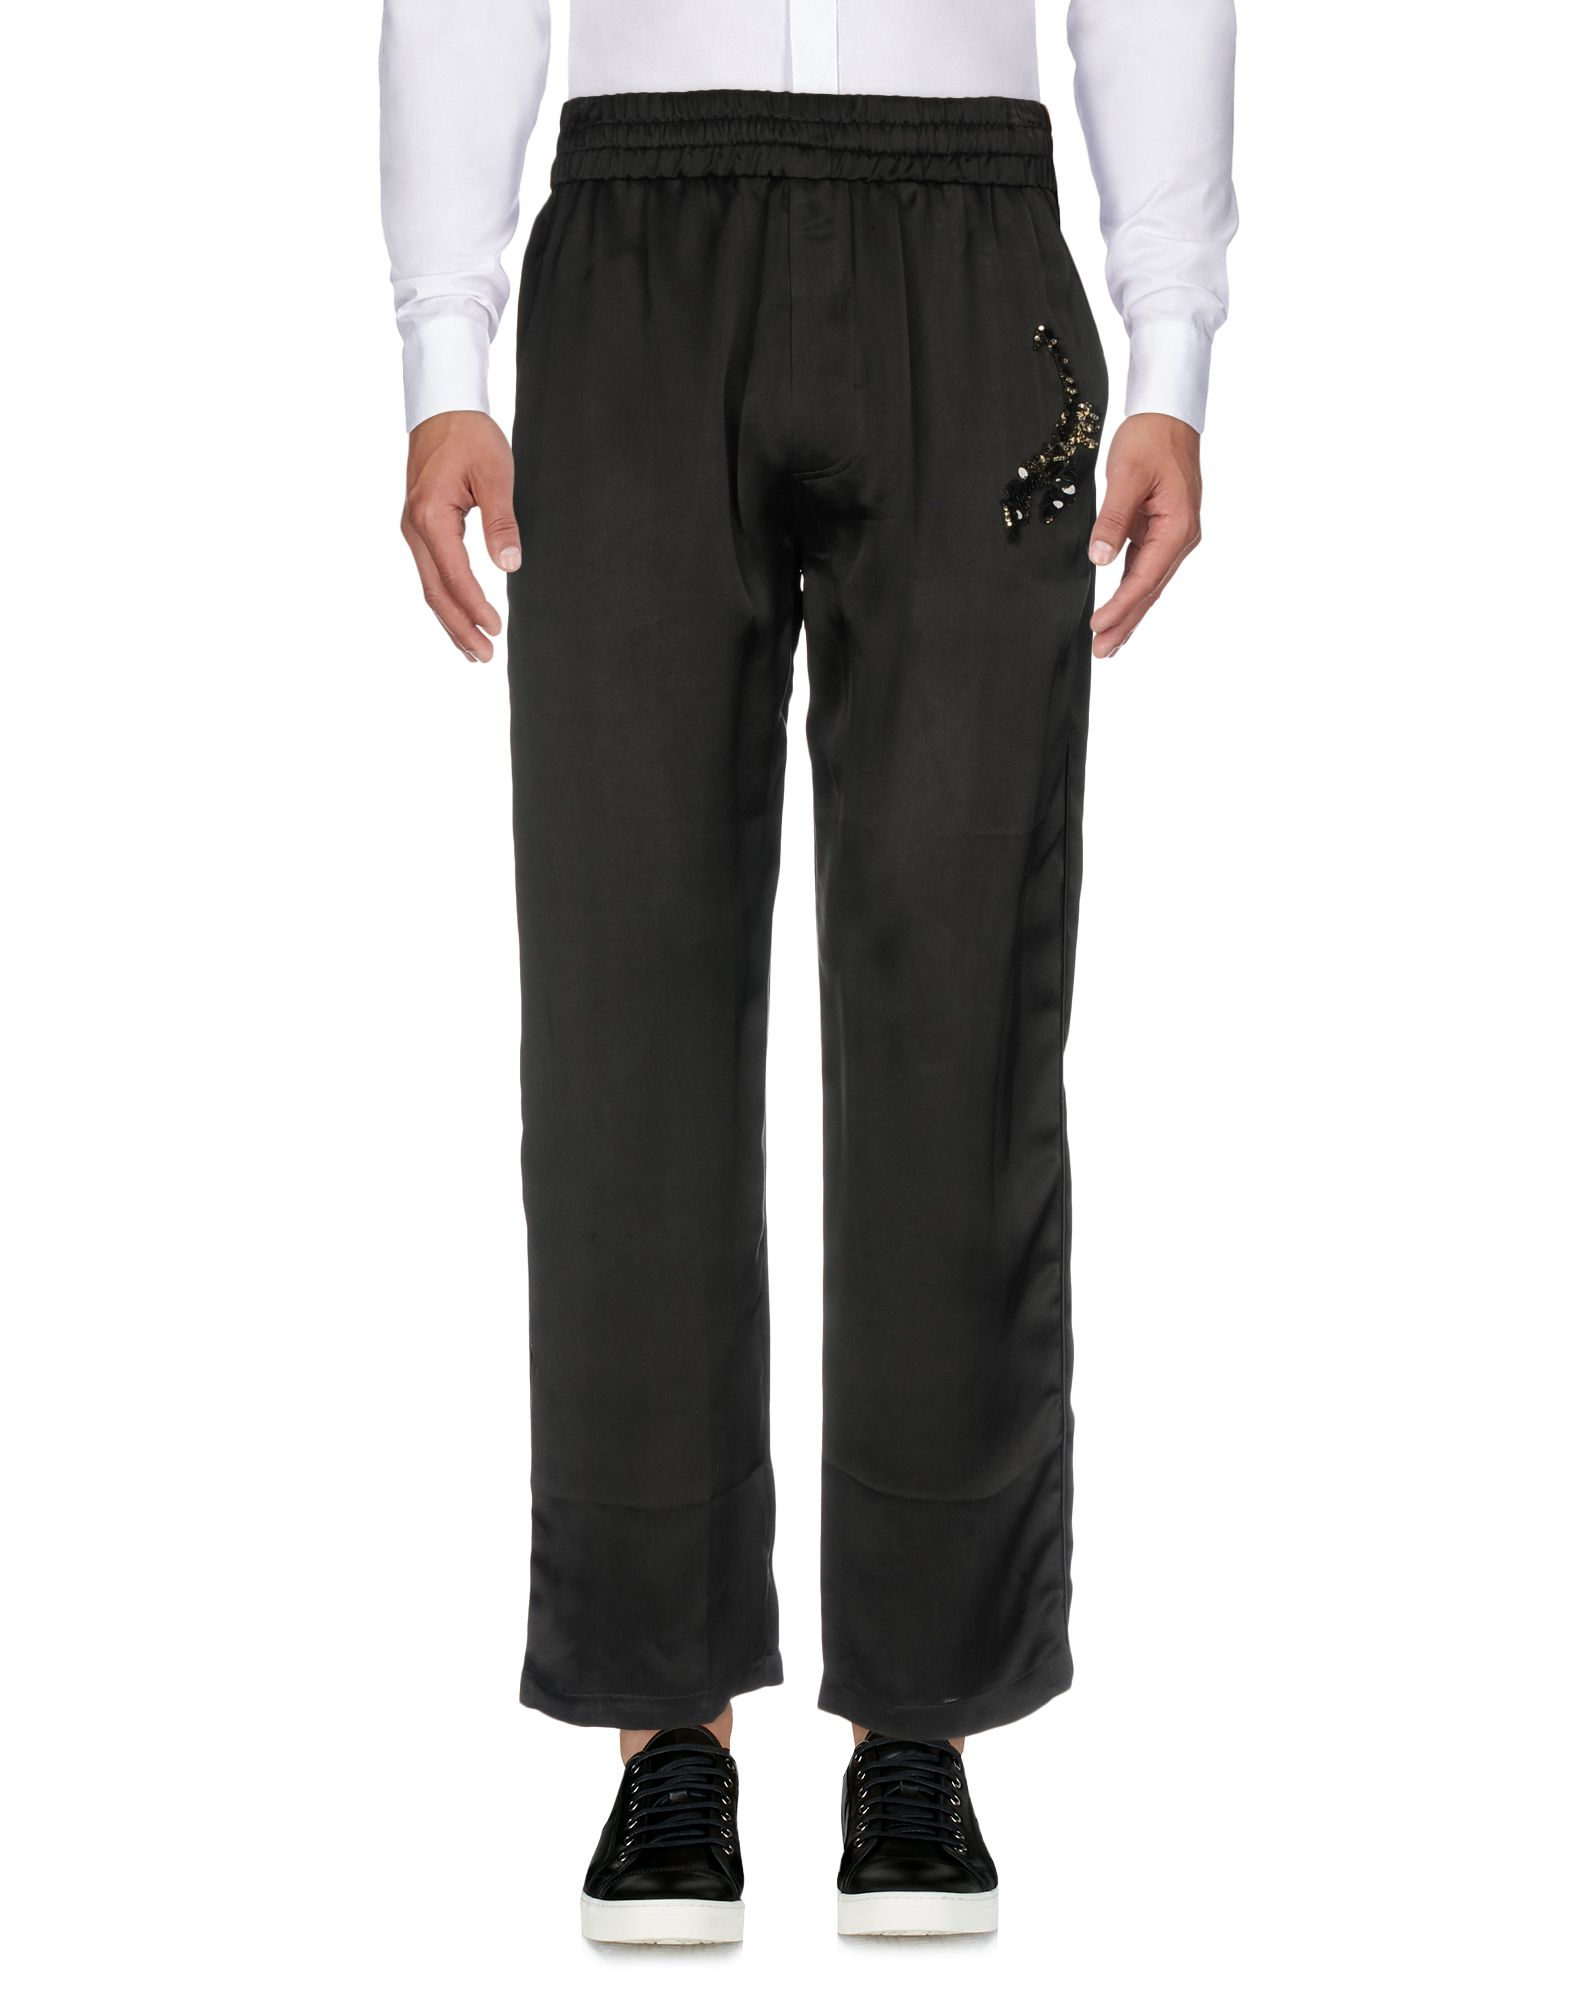 Pantalone Off-White™ Donna - Acquista online su